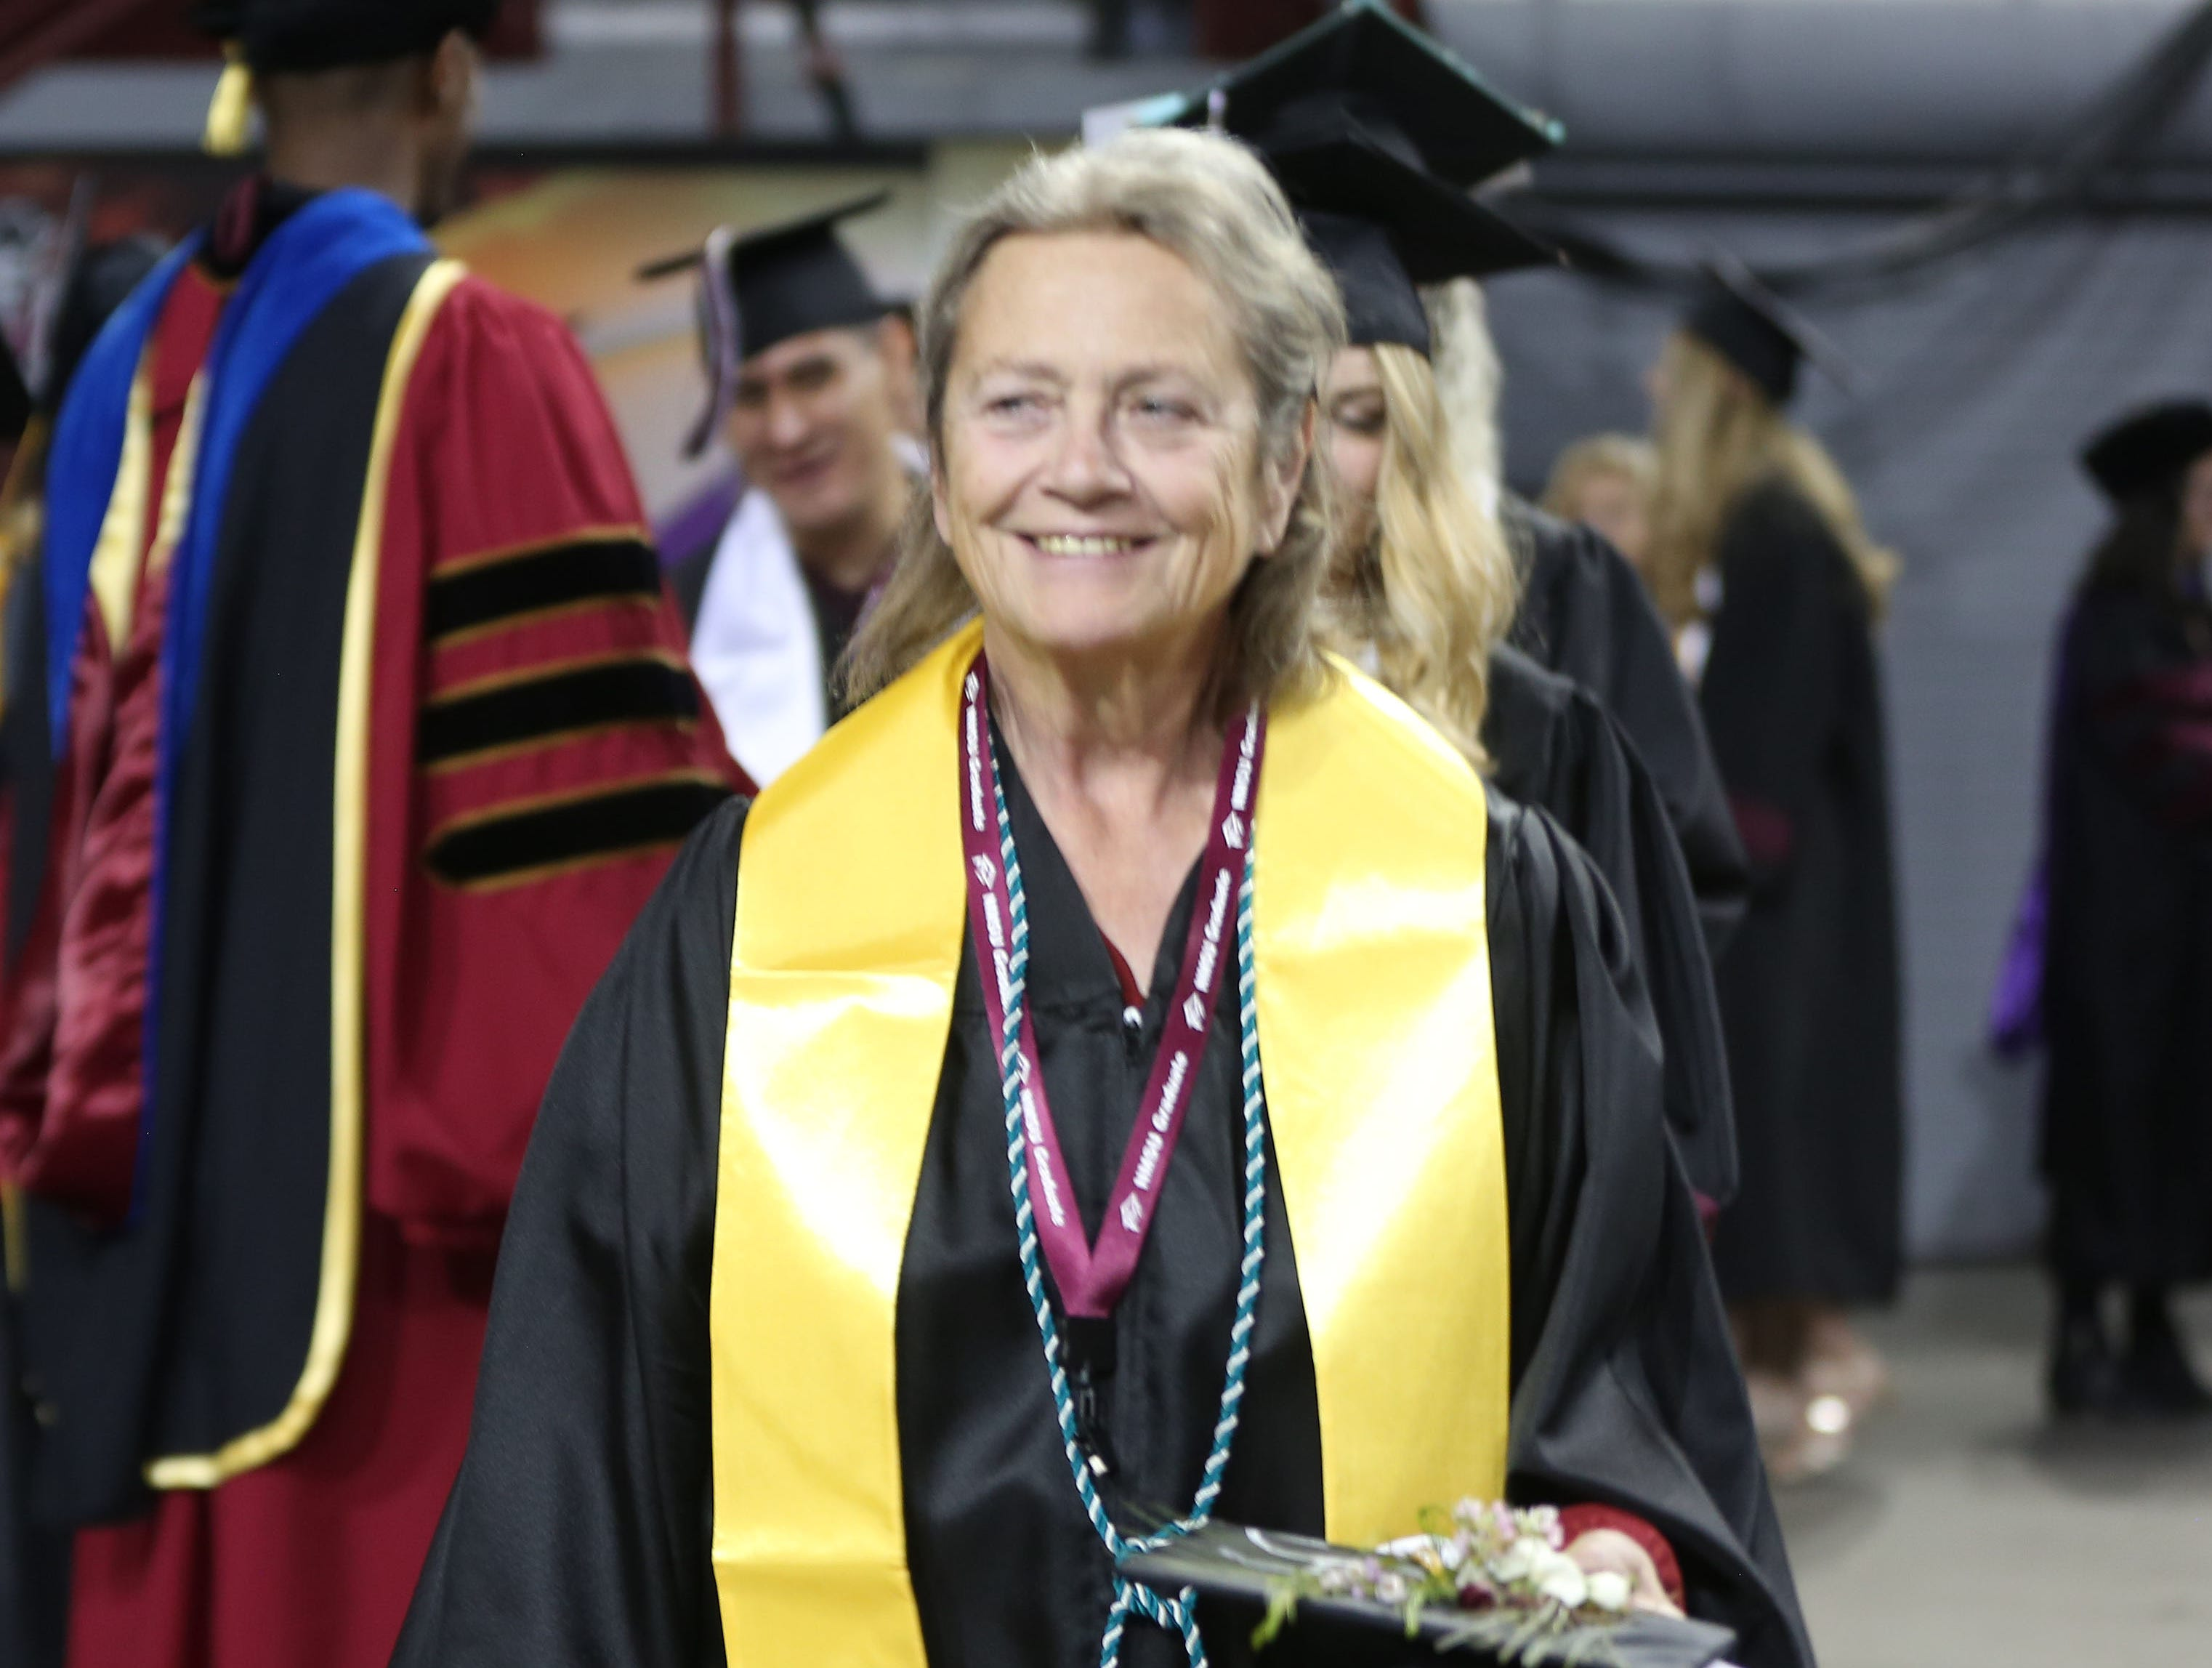 This year, 438 New Mexico State University students received their master's degree, during two commencement ceremonies on Saturday May 11, 2019.